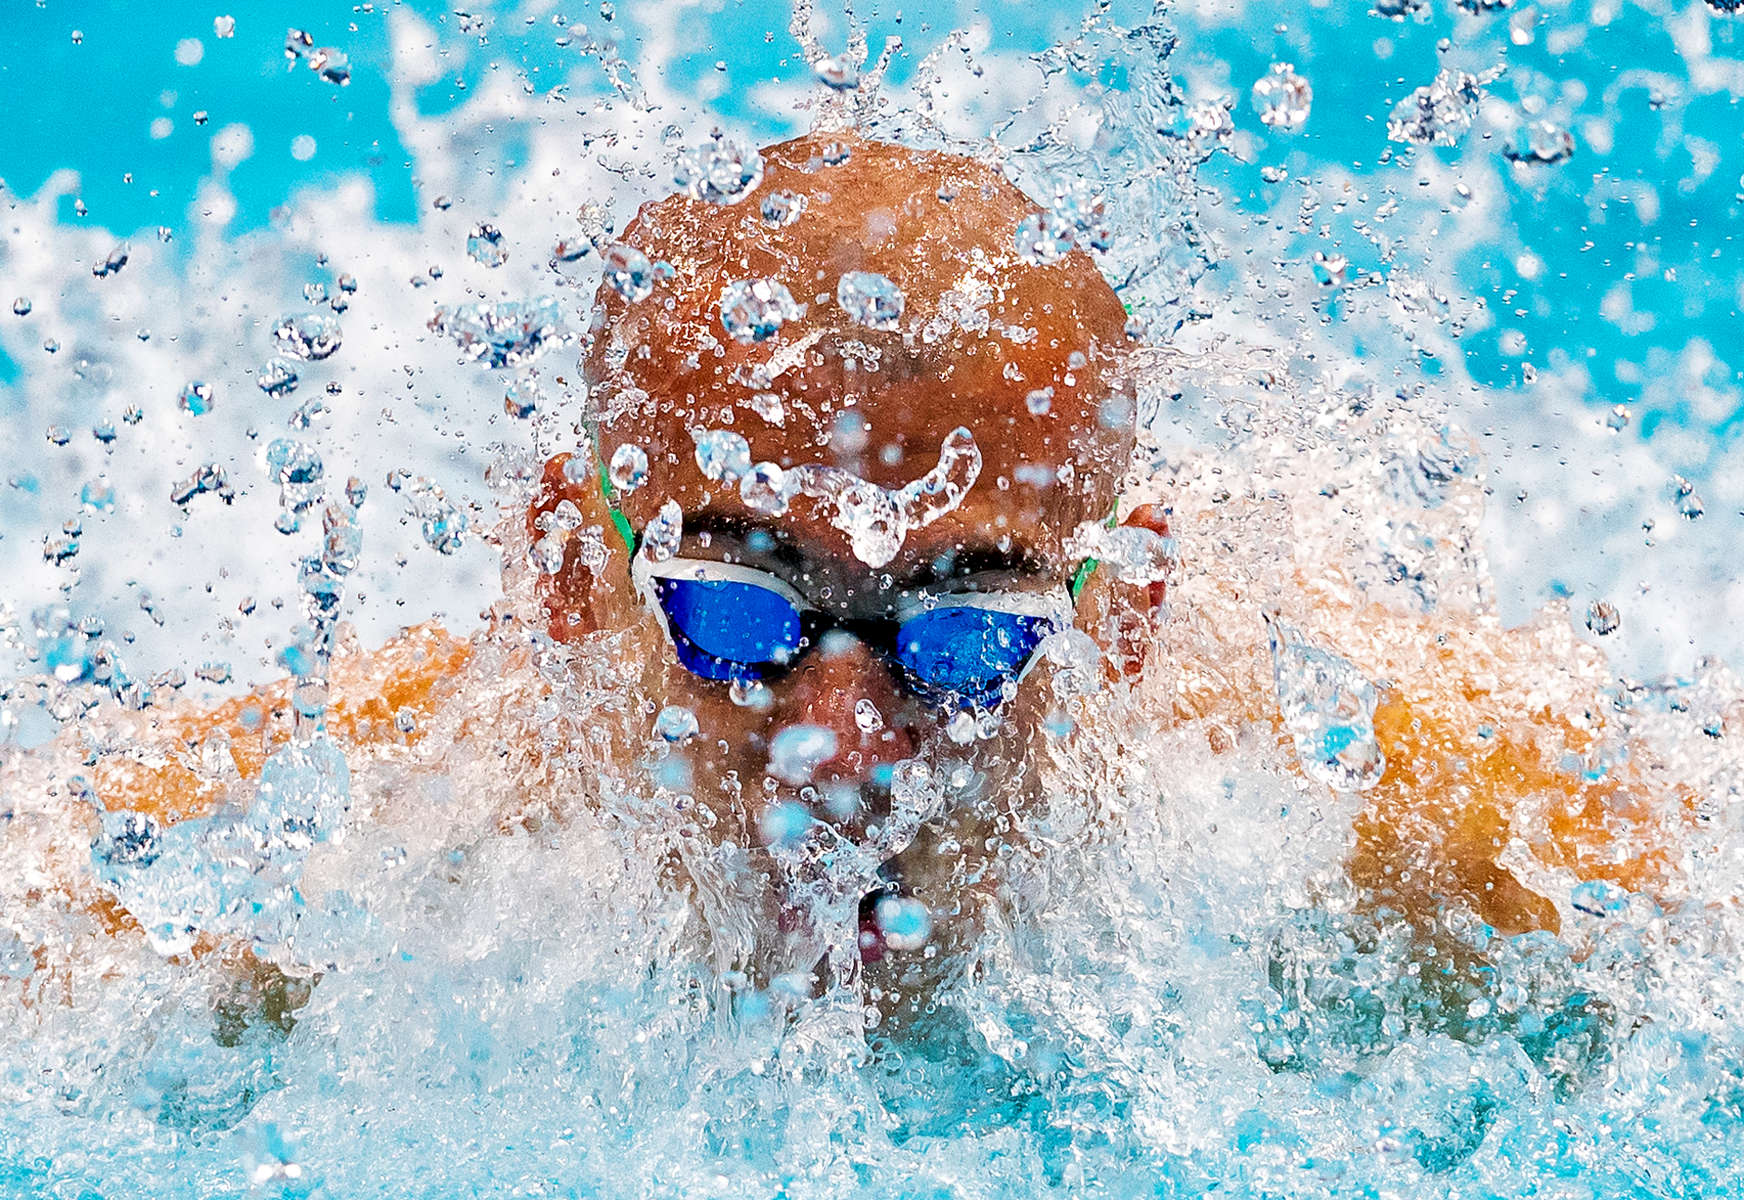 Laszlo Cseh of Hungary competes during the Men's 100m Butterfly heats on day fifteen of the Budapest 2017 FINA World Championships on July 28, 2017 in Budapest, Hungary.